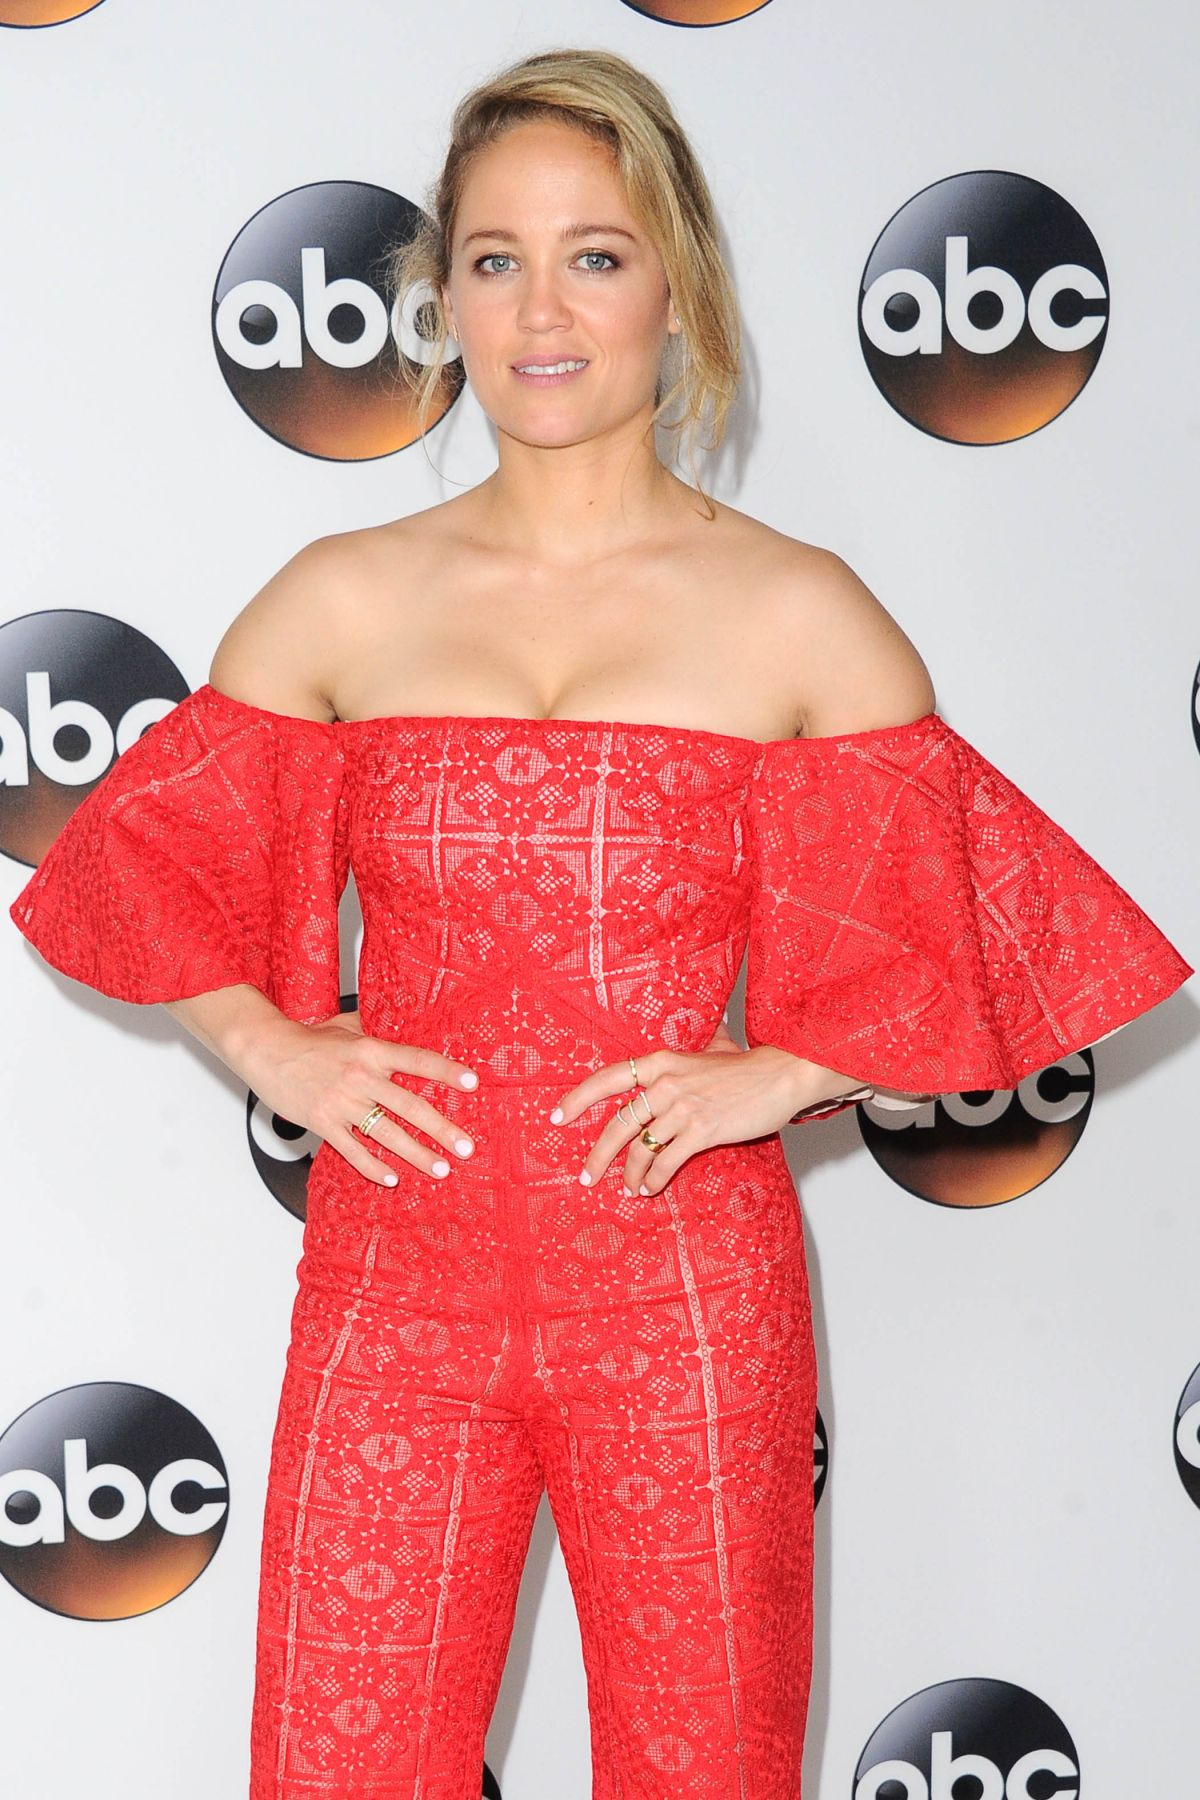 ERIKA CHRISTENSEN at Disney/ABC TCA Summer Tour in Beverly Hills 08/06/2017